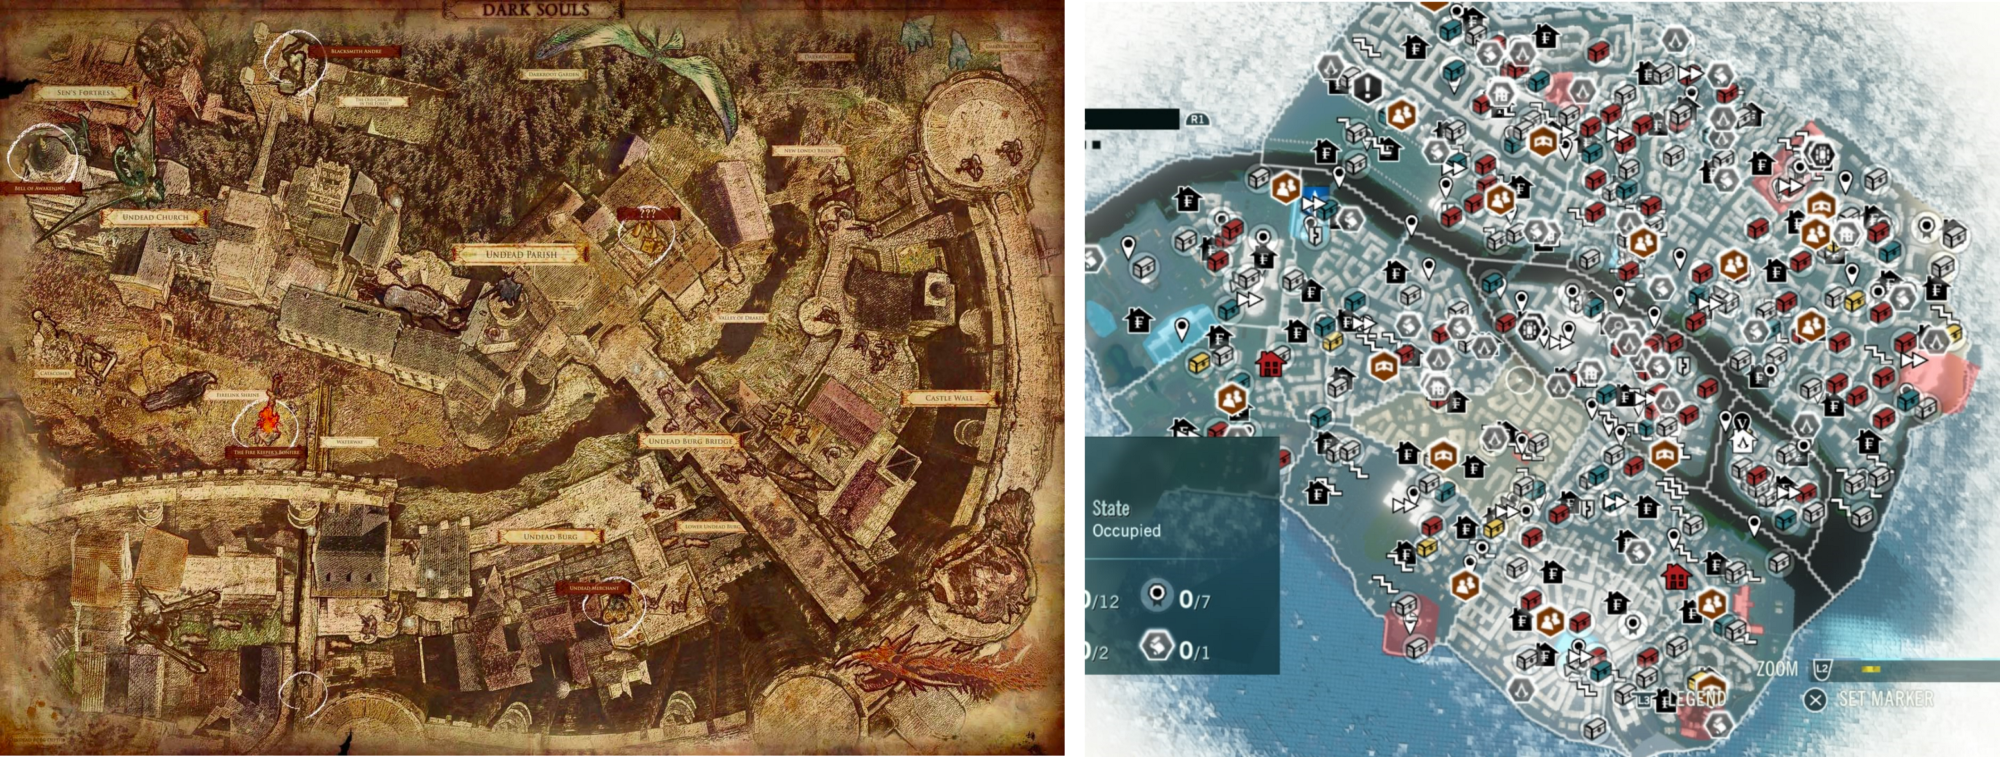 Some random thoughts on open world games rustam tagiev medium every inch of the semi open world of dark souls has its own story to tell the assassins creed unity map is just stocked with content that has no story to gumiabroncs Images